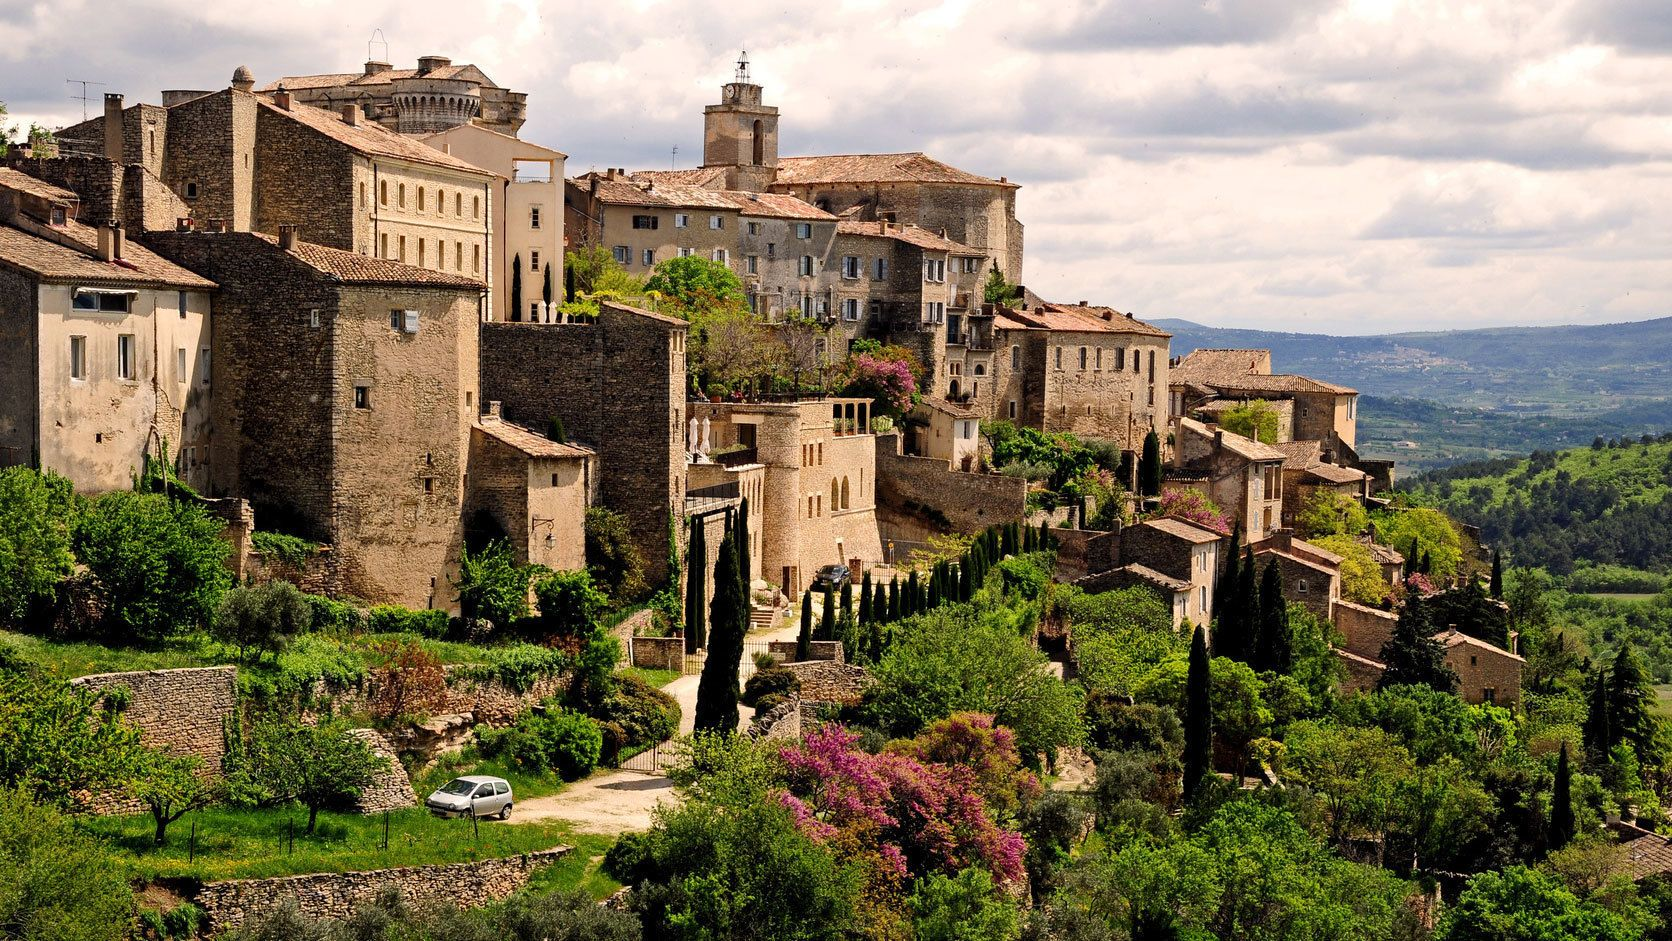 the small hilly town of Luberon in France